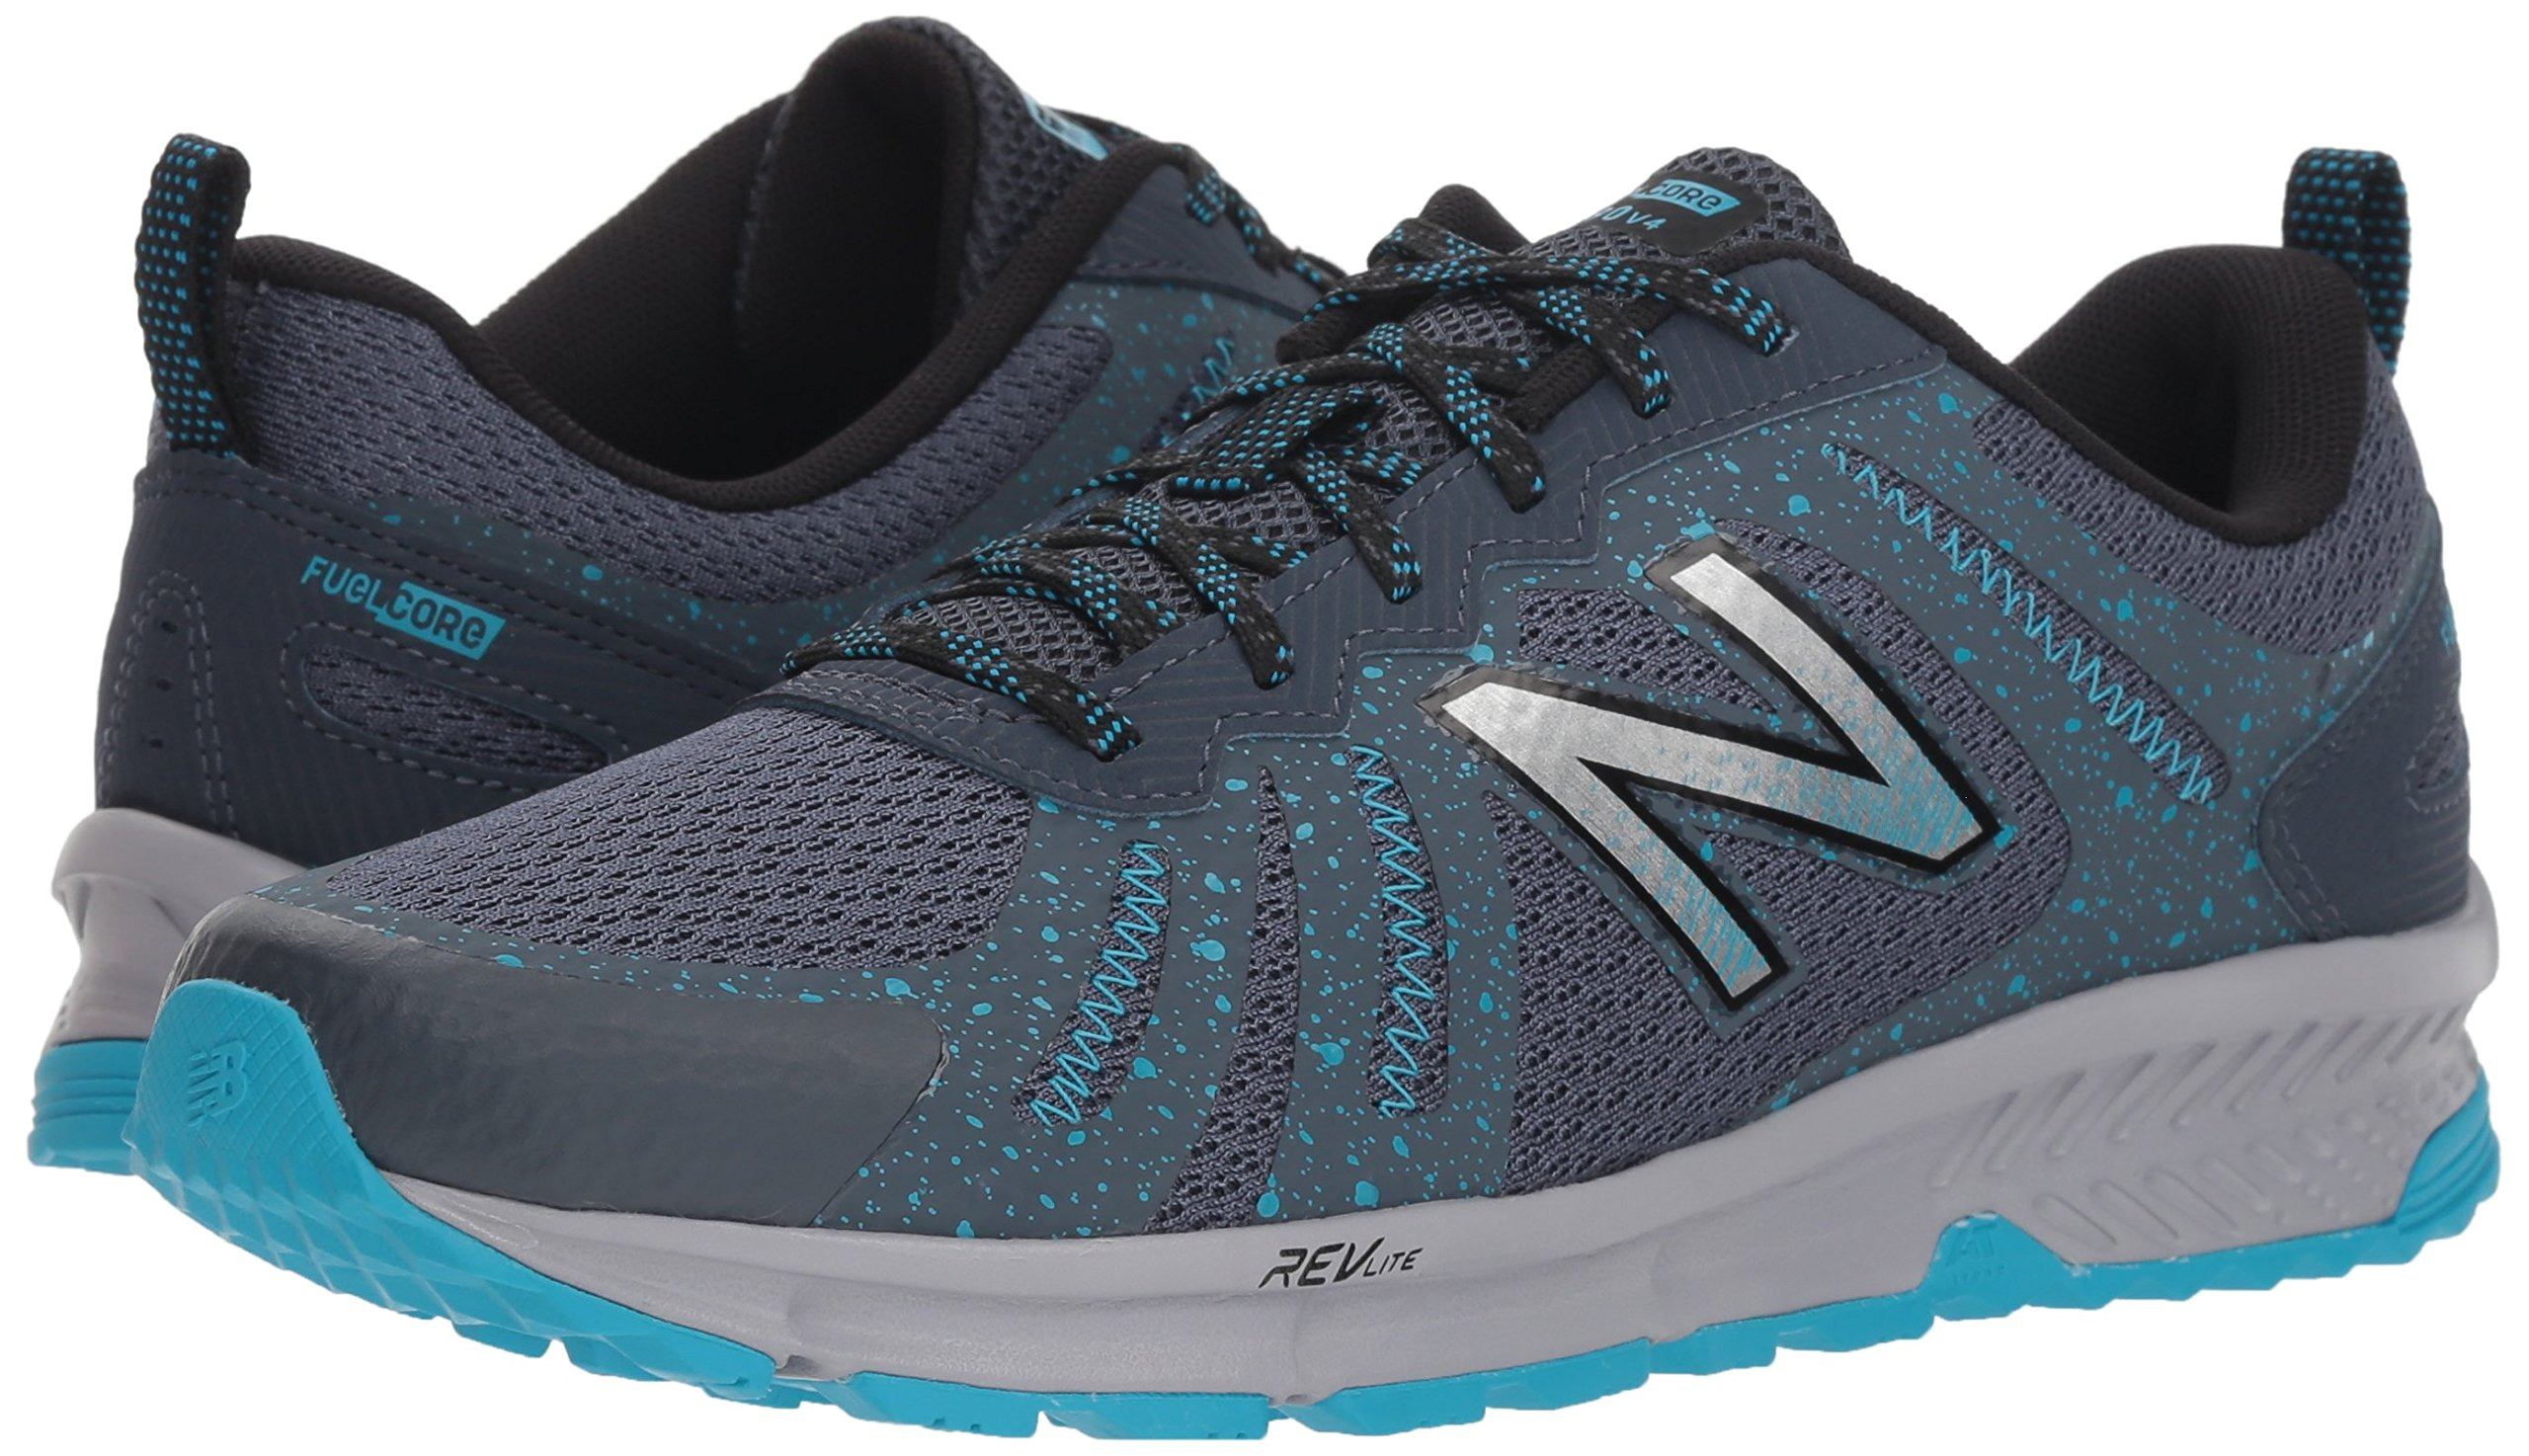 New Balance Women's 590v4 FuelCore Trail Running Shoe Dark Grey 6 D US by New Balance (Image #5)